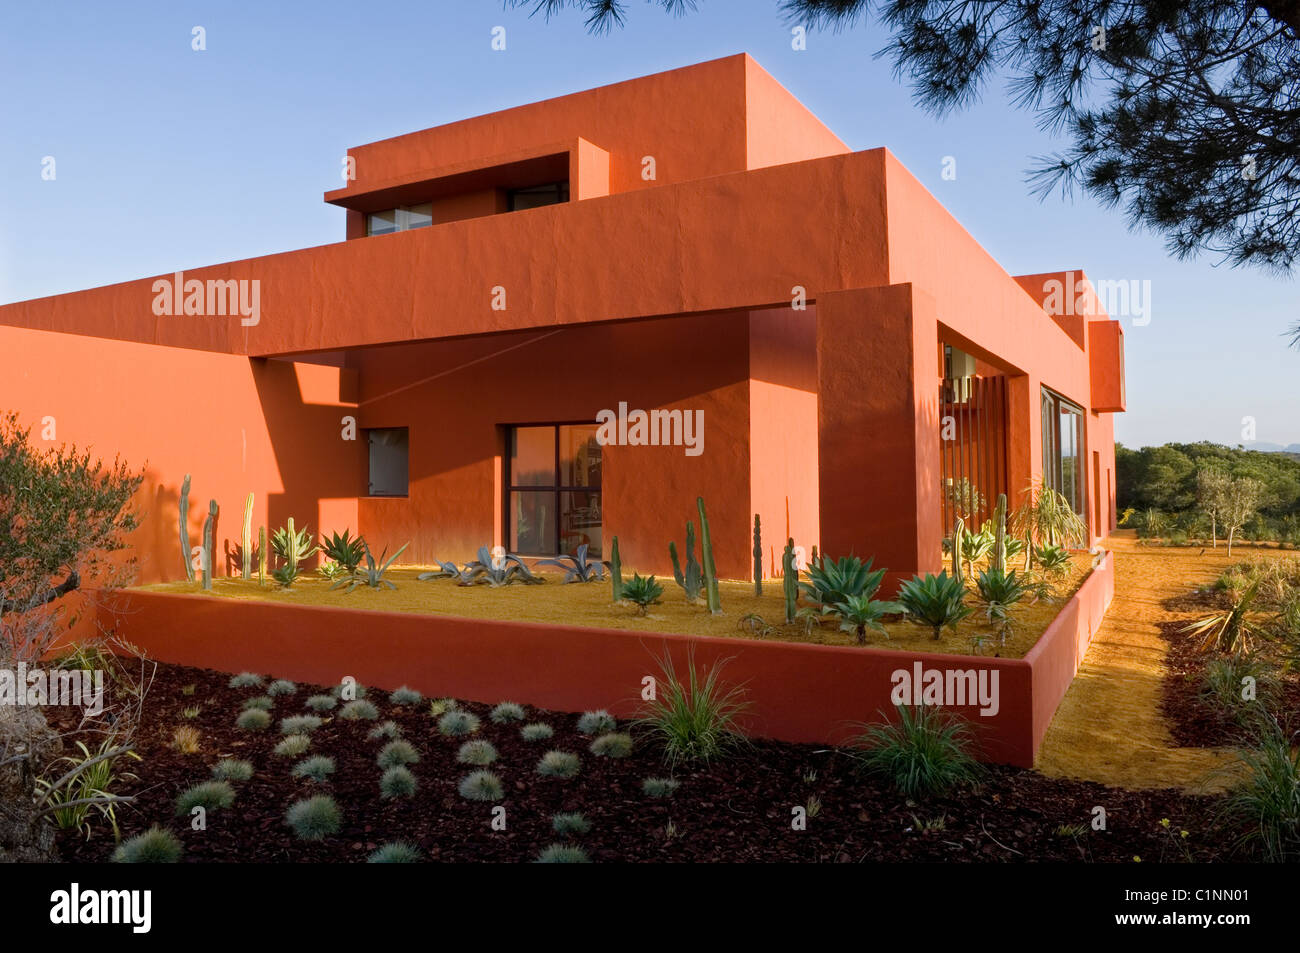 Spanish Modernist House Designed In A Geometric Style By Leading Mexican Architect Legorreta